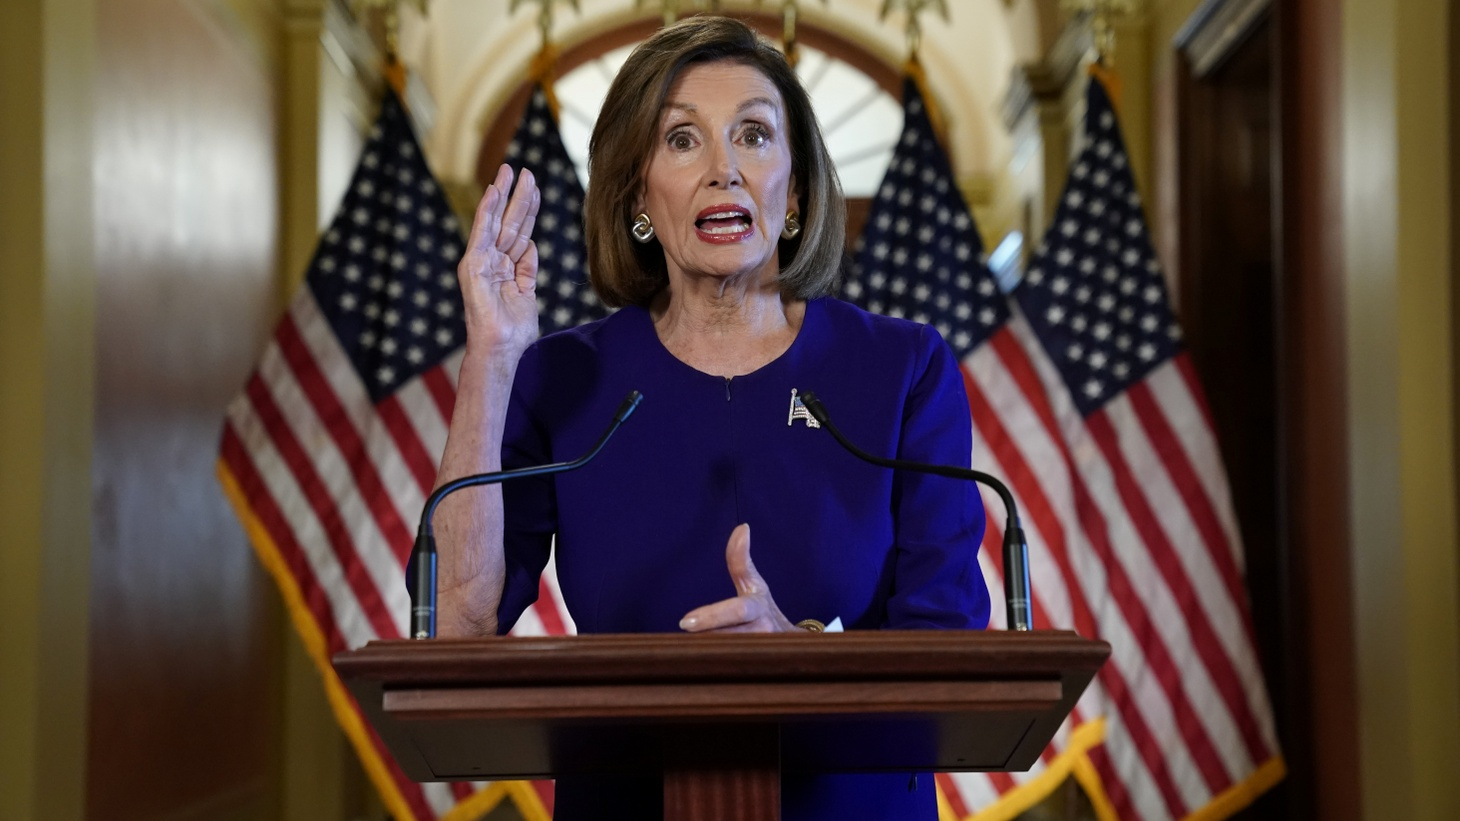 House Speaker Nancy Pelosi (D-CA) announces the House of Representatives will launch a formal inquiry into the impeachment of U.S. President Donald Trump following a closed House Denocratic caucus meeting at the U.S. Capitol in Washington, U.S., September 24, 2019.